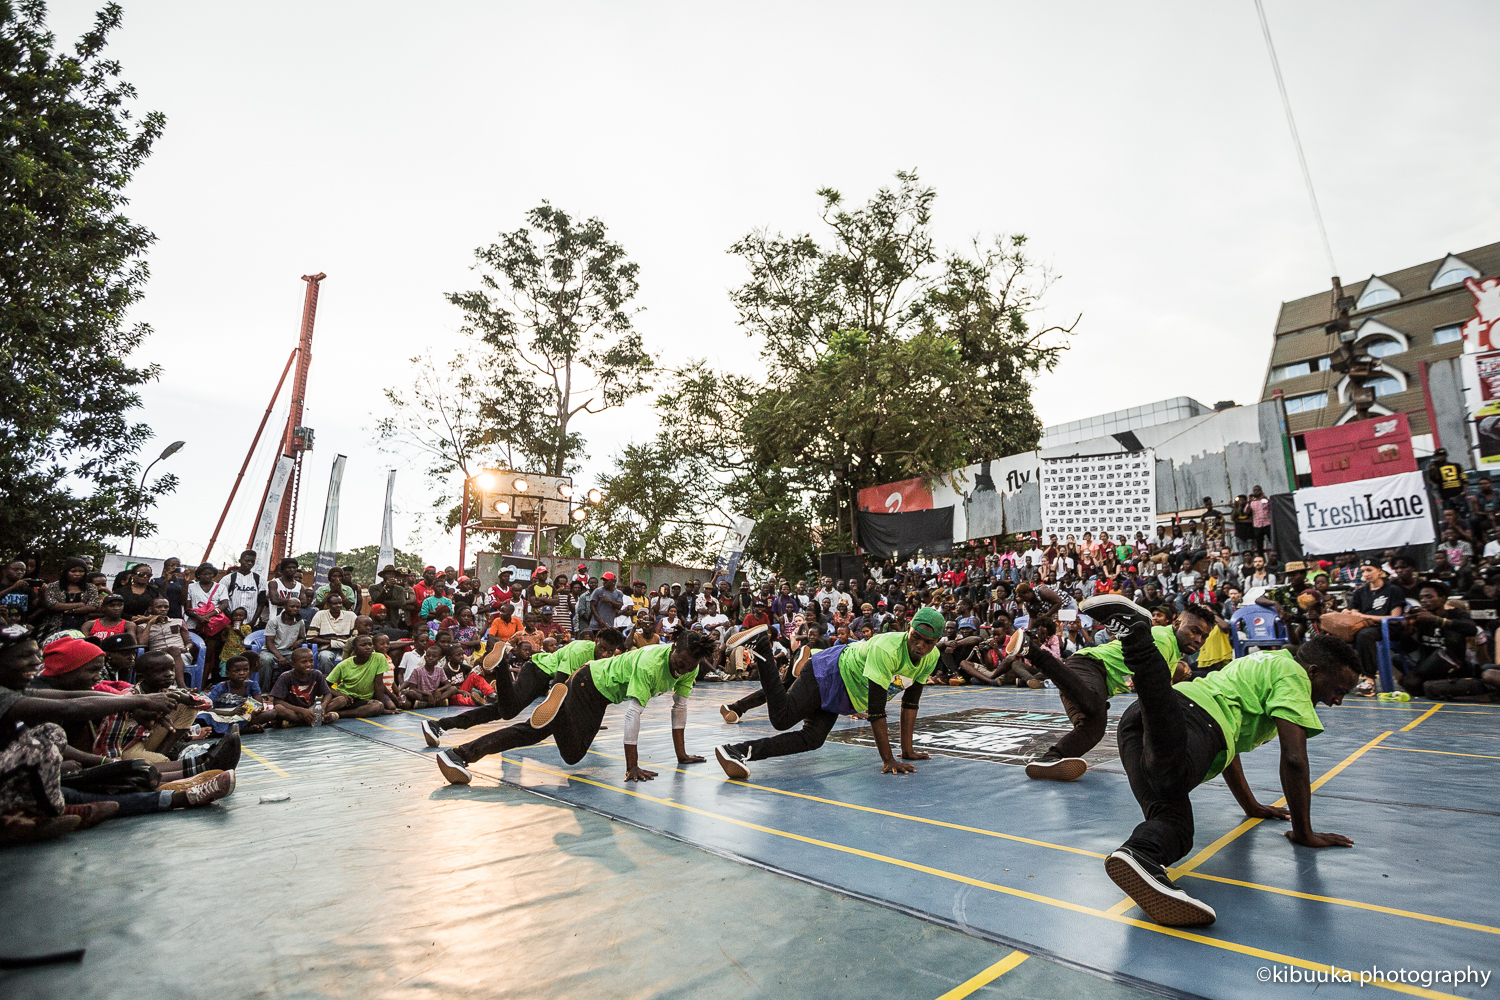 A-crew-from-Tanzania-amazing-performance-at-Breakfastjam-2016-finals-photo